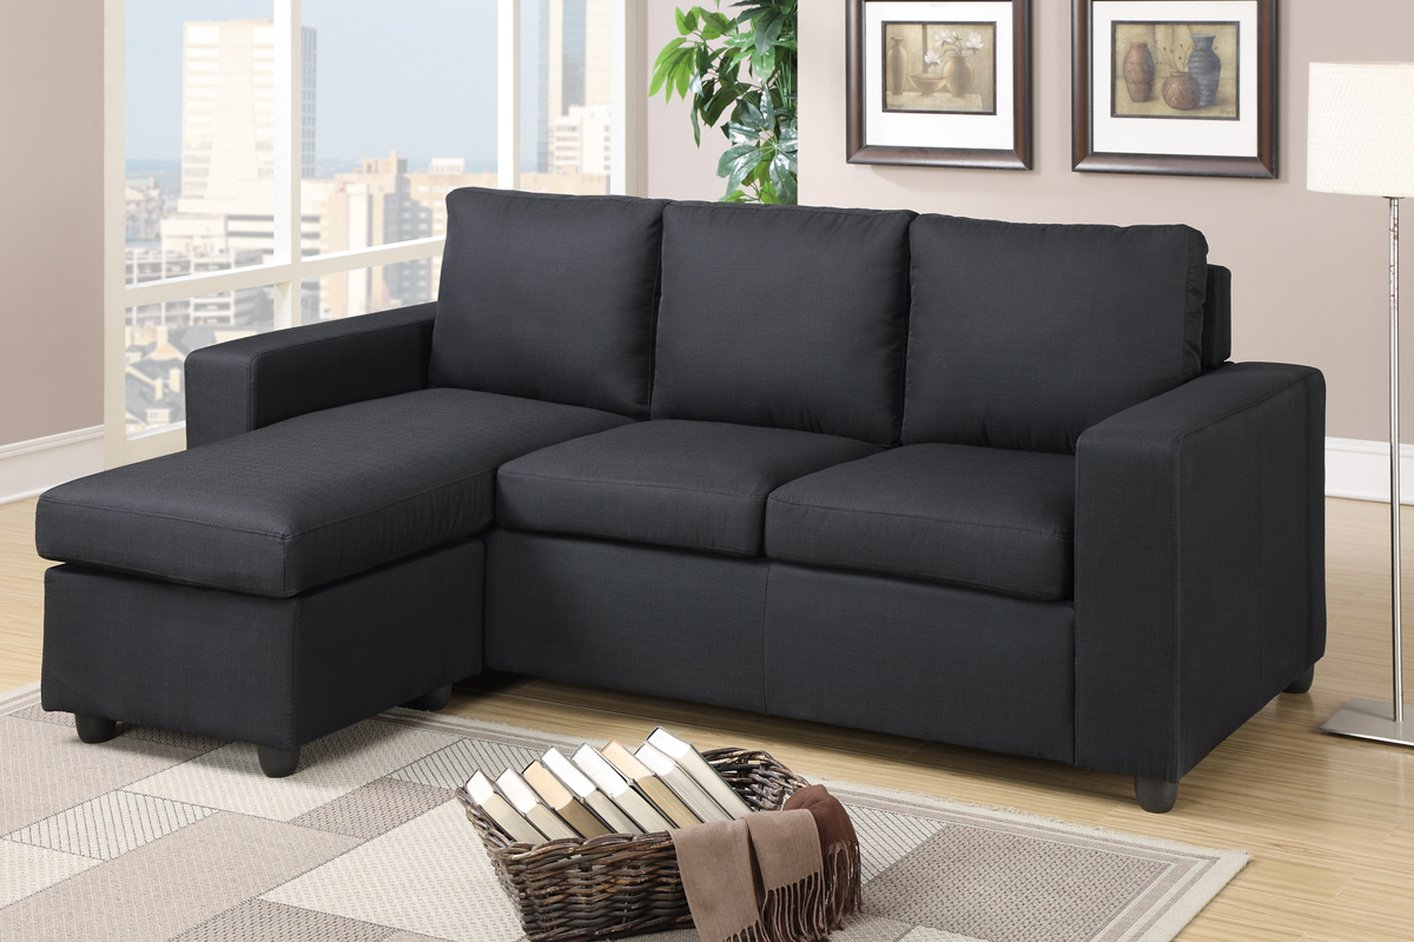 Poundex akeneo f7490 black fabric sectional sofa steal a for Black fabric couches